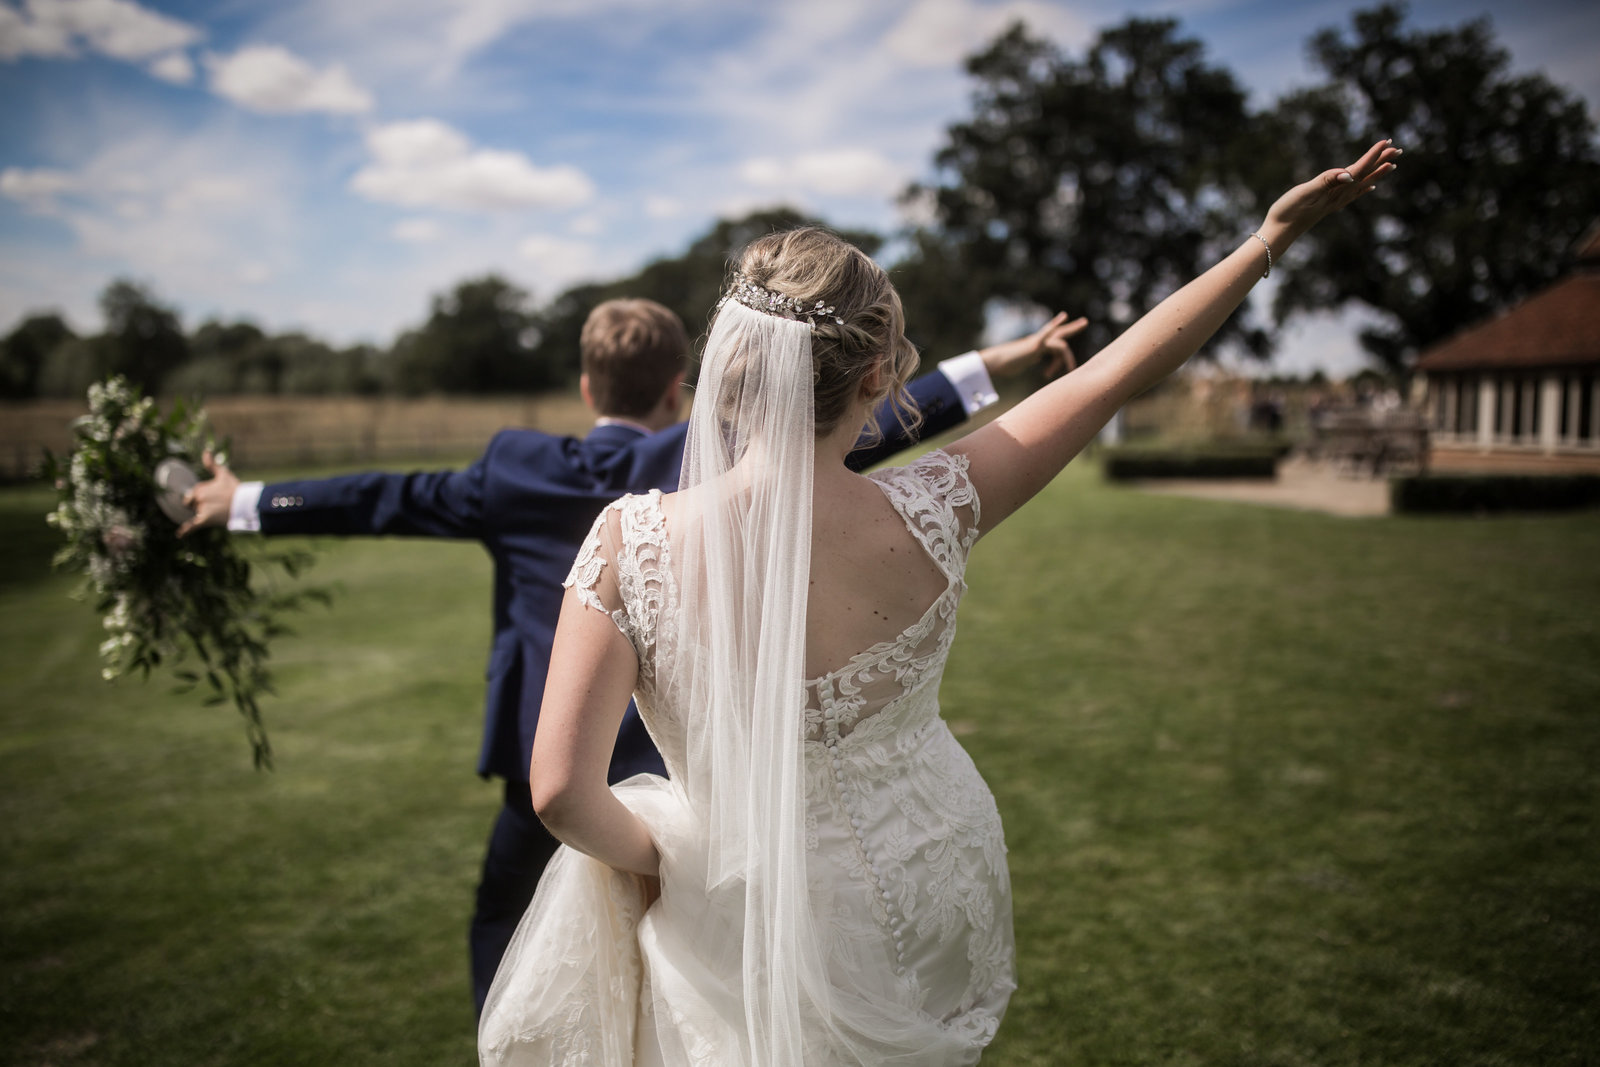 Bride and Groom arrive at their Norfolk wedding venue with their arms thrown in the air and their backs to the camera.